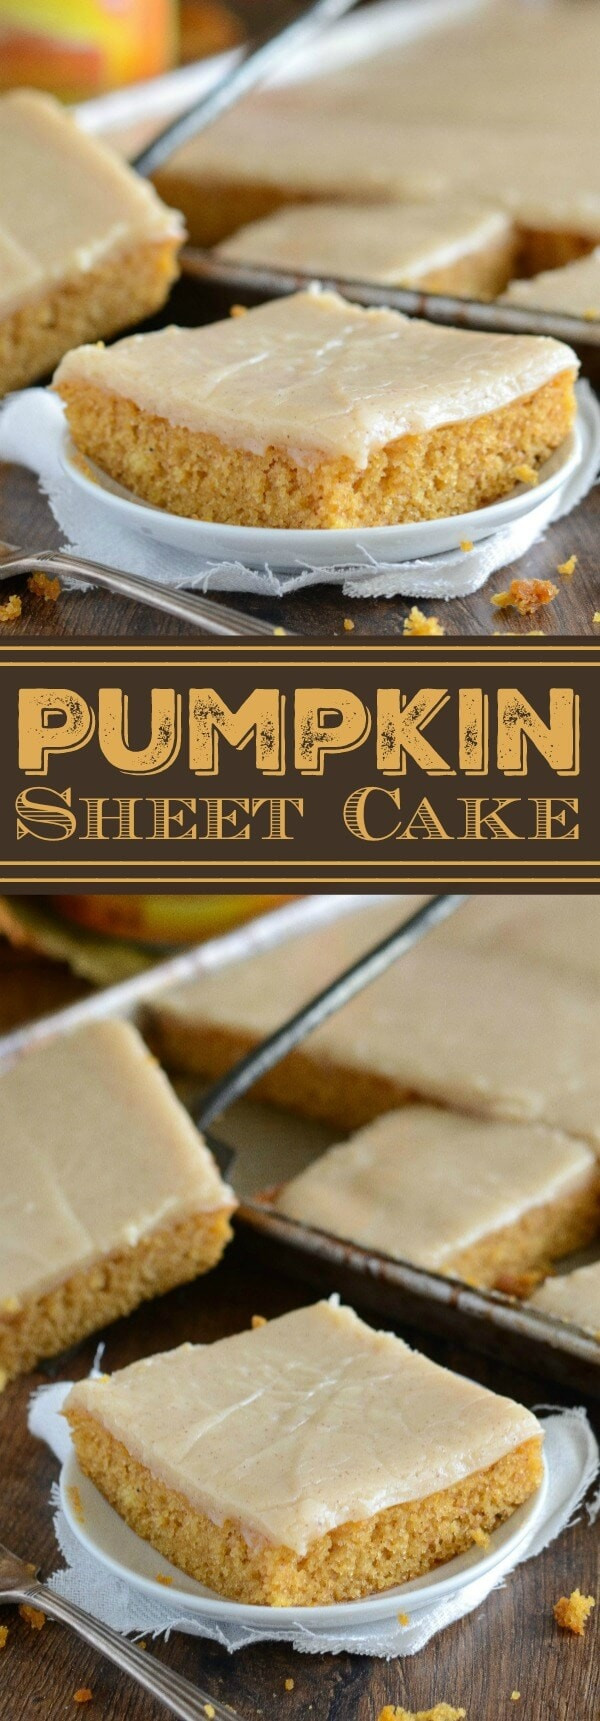 Pumpkin Sheet Cake  Pumpkin Sheet Cake